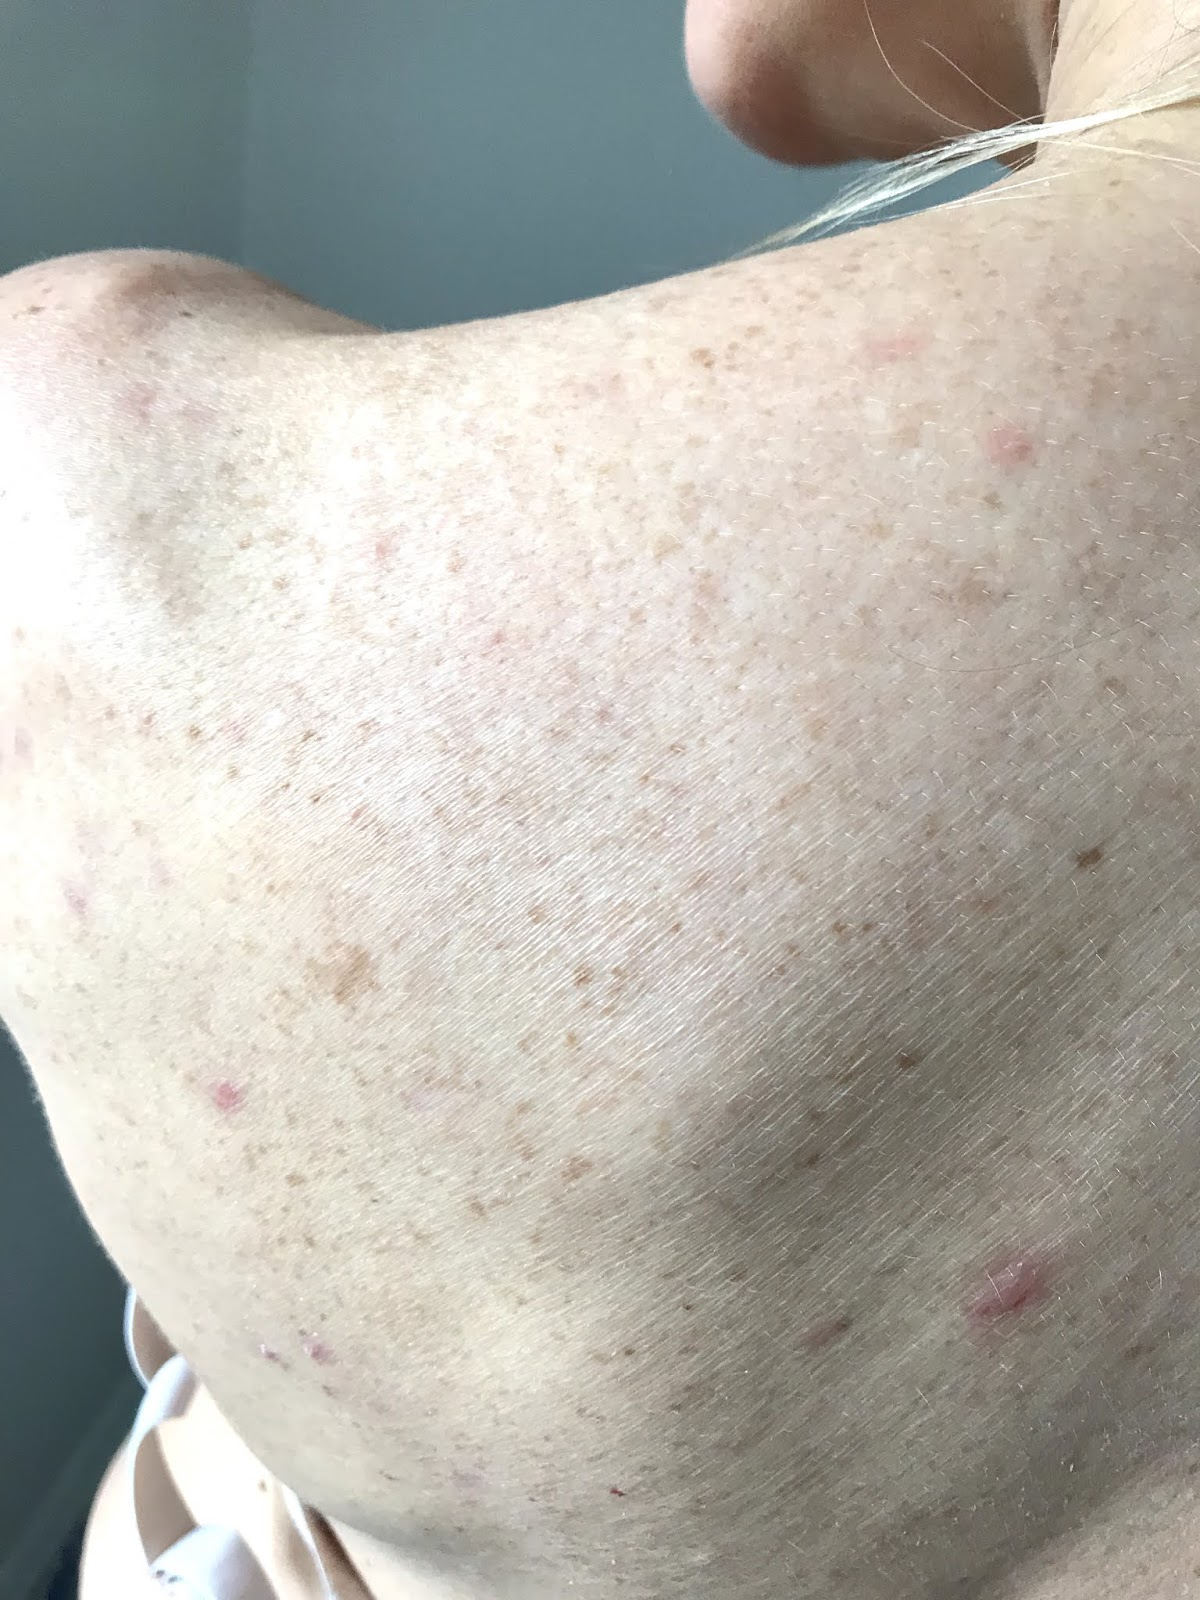 Cleared acne left shoulder after diet and homeopathy